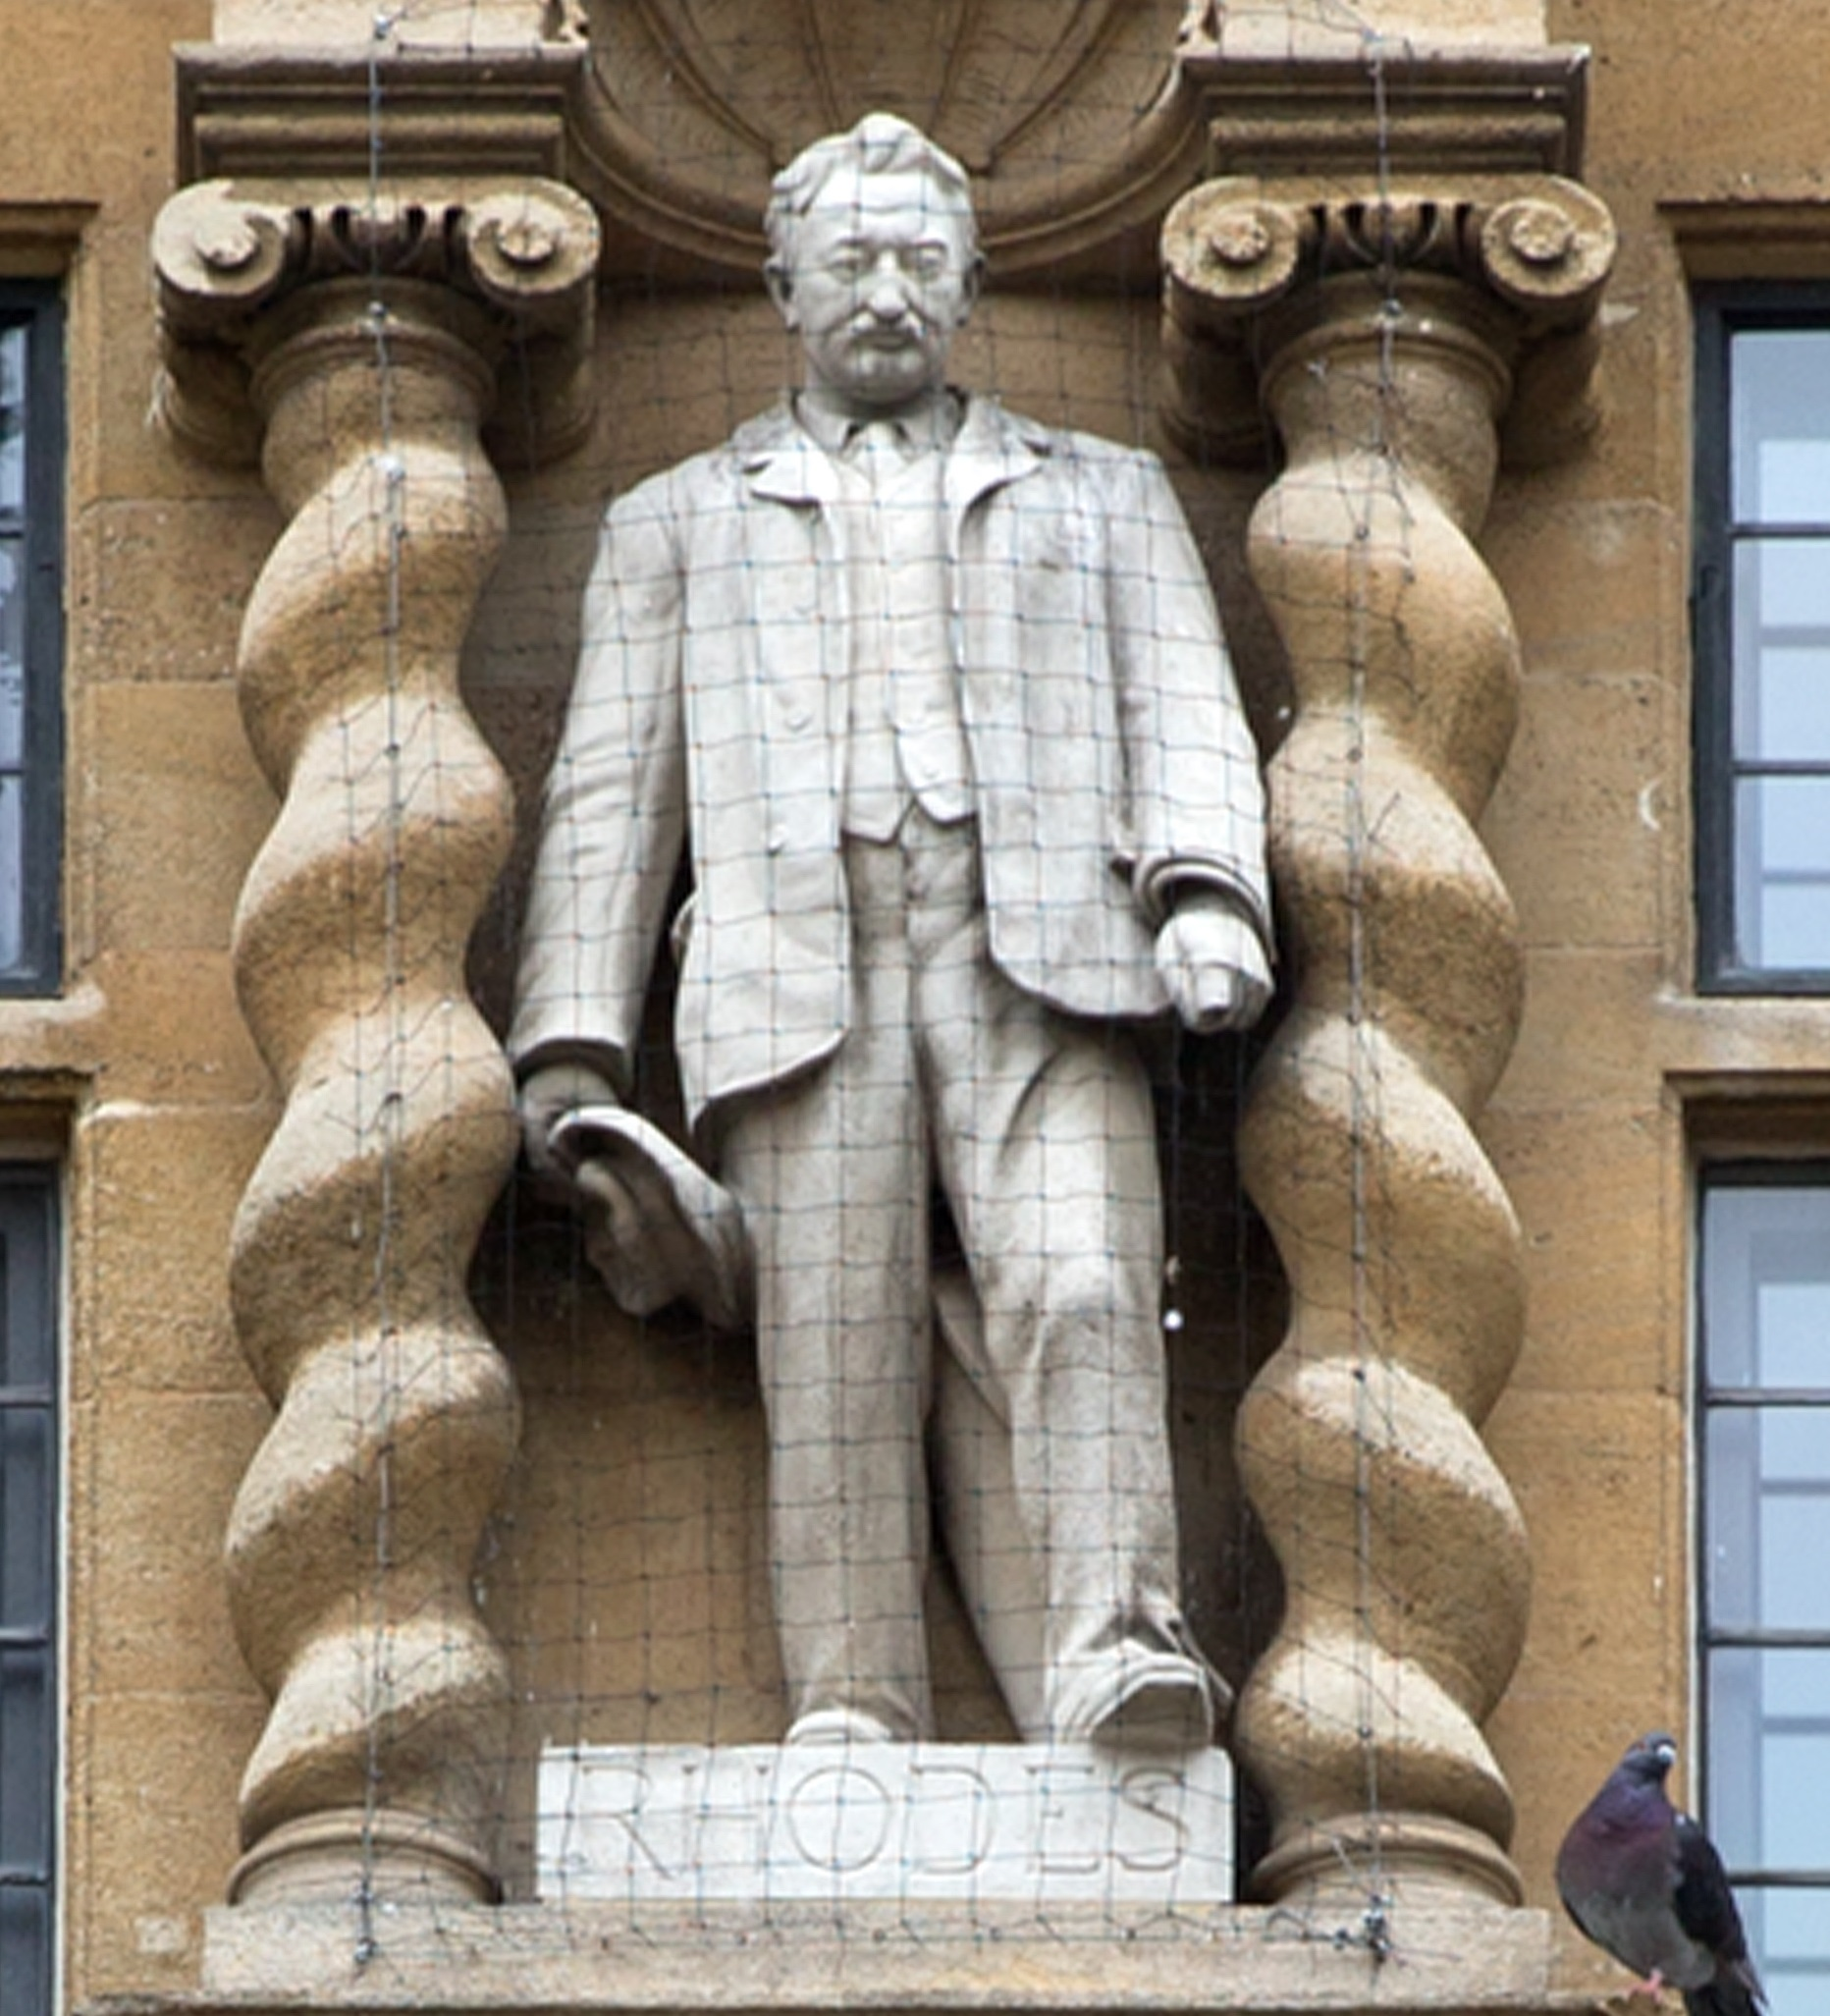 Controversial: The Cecil Rhodes statue at Oriel College in High Street, Oxford